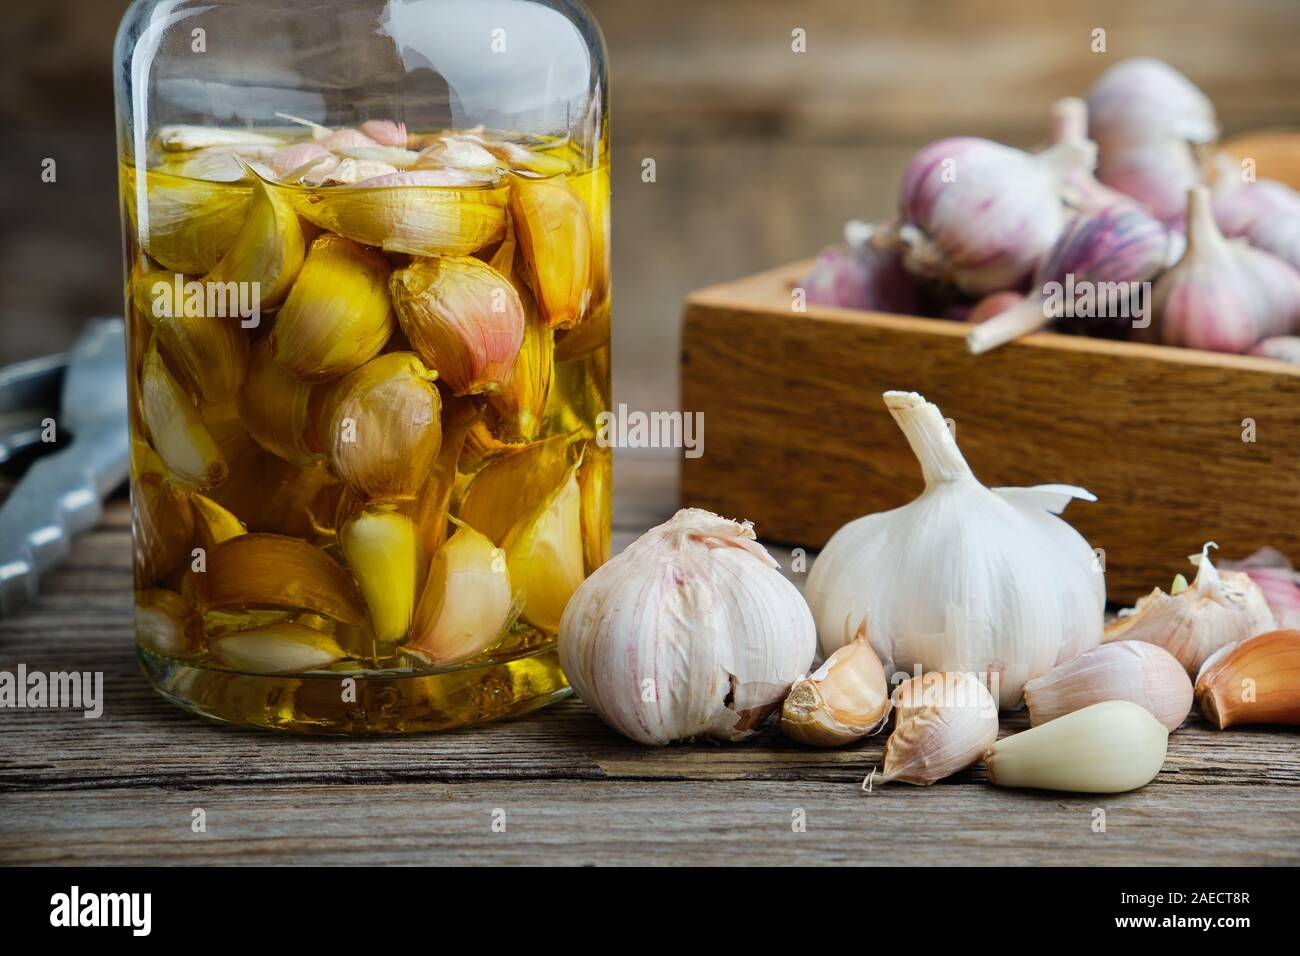 Garlic aromatic flavored oil or infusion bottle and wooden crate of garlic cloves on wooden kitchen table. Stock Photo